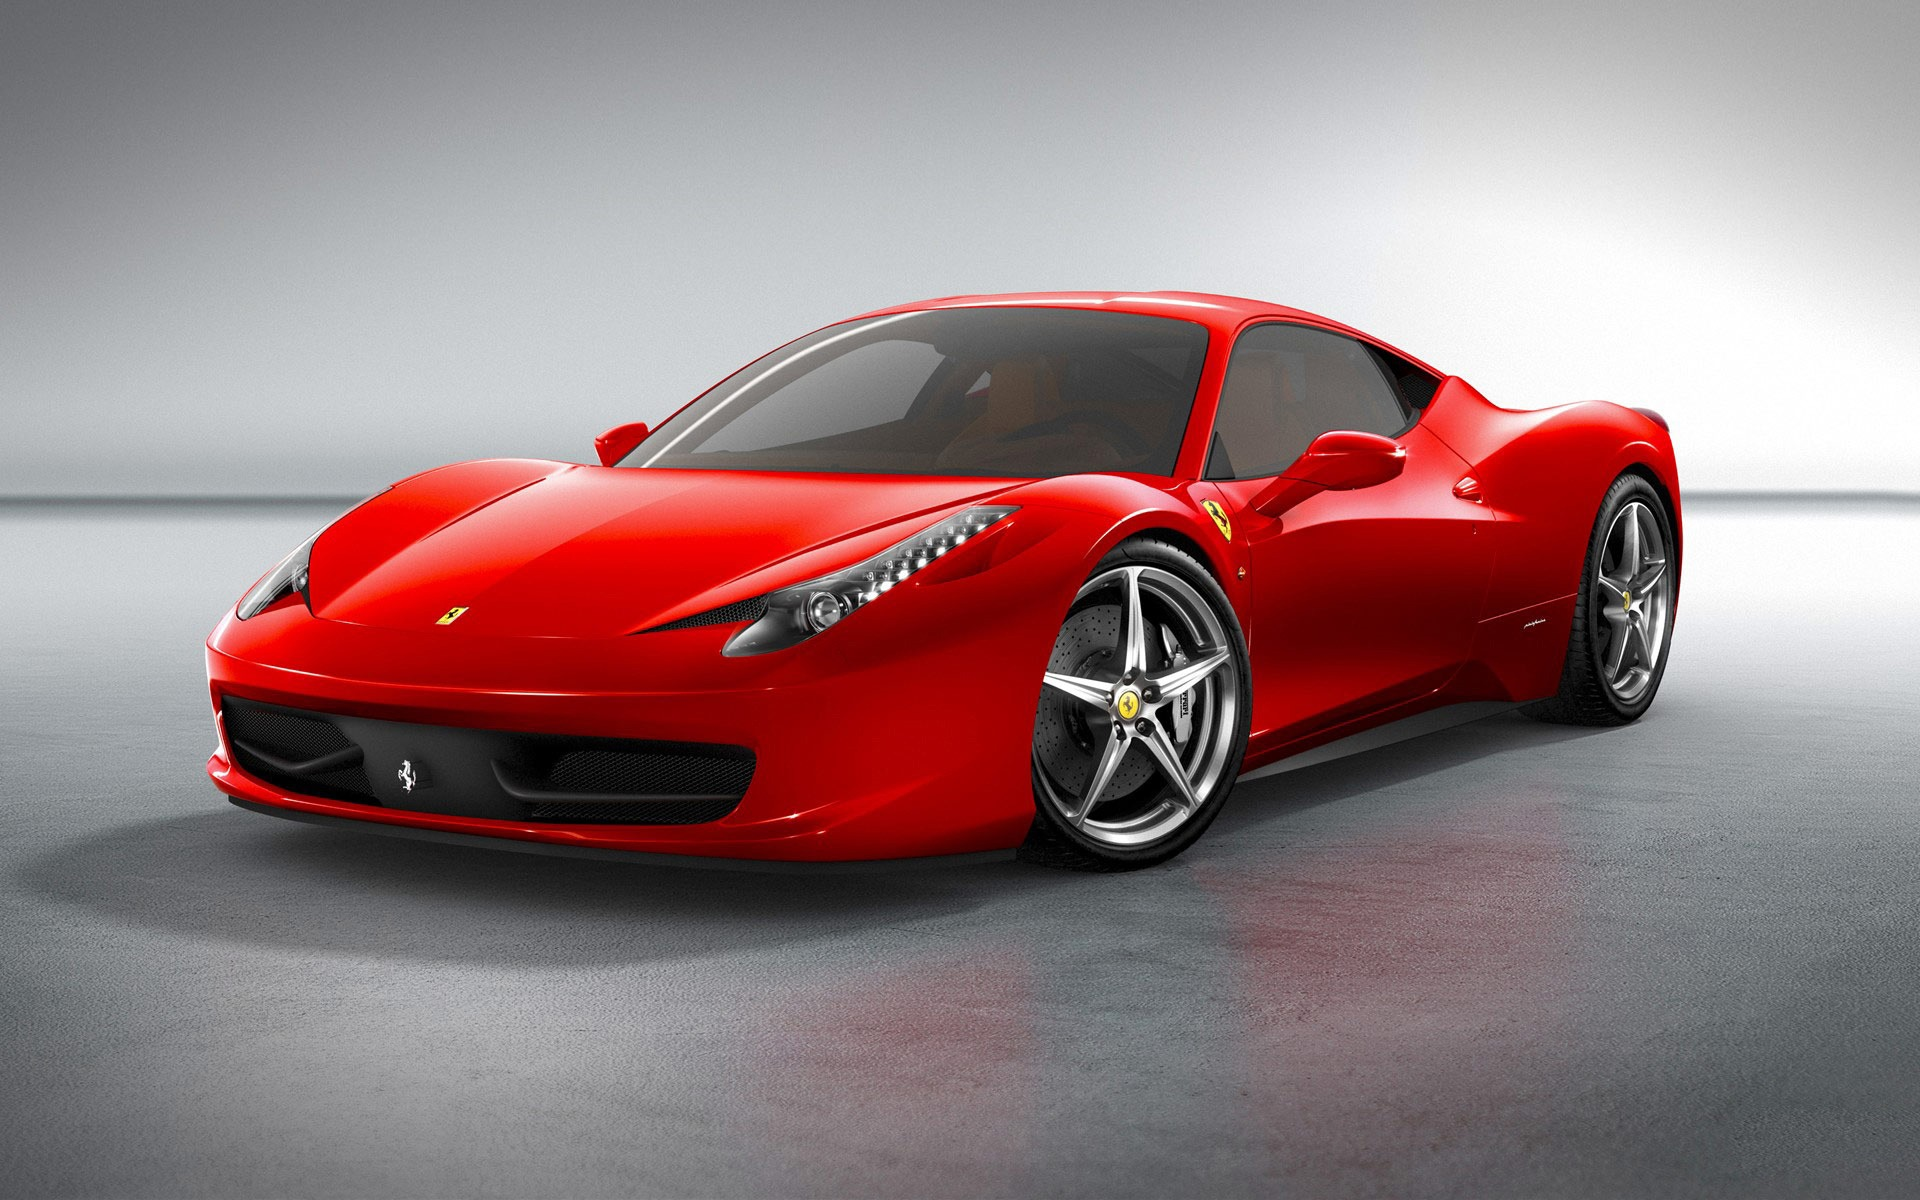 Ferrari 458 Italia Wallpaper Ferrari Cars Wallpapers